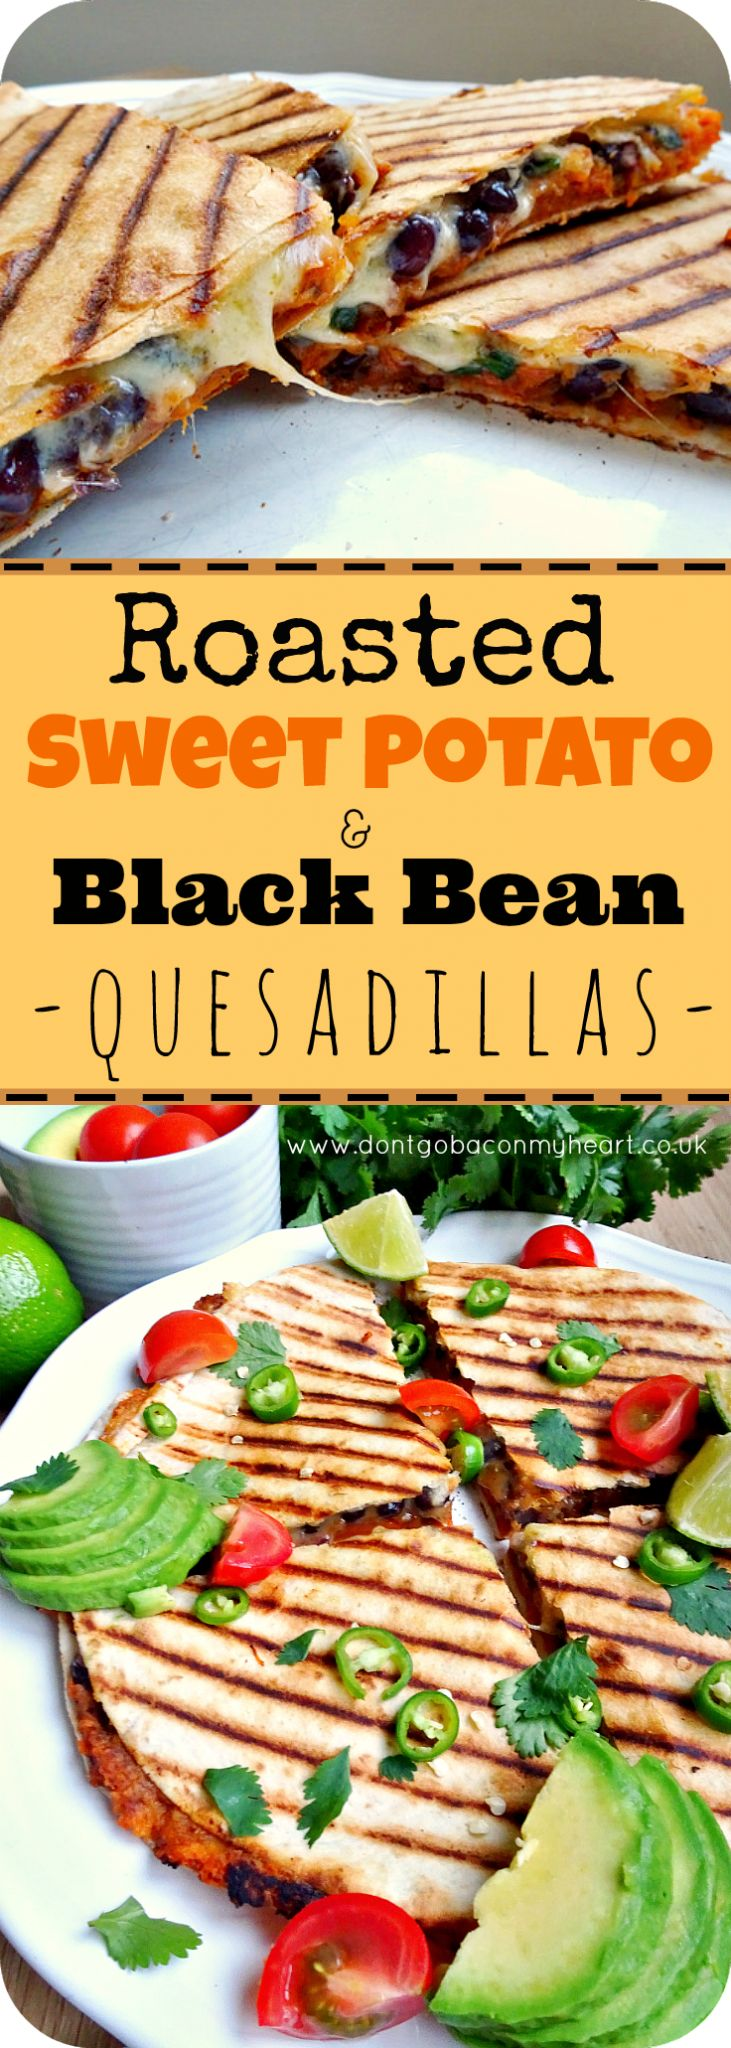 The best vegetarian Quesadillas you'll ever make. So easy, super quick and most importantly really delicious and filling.